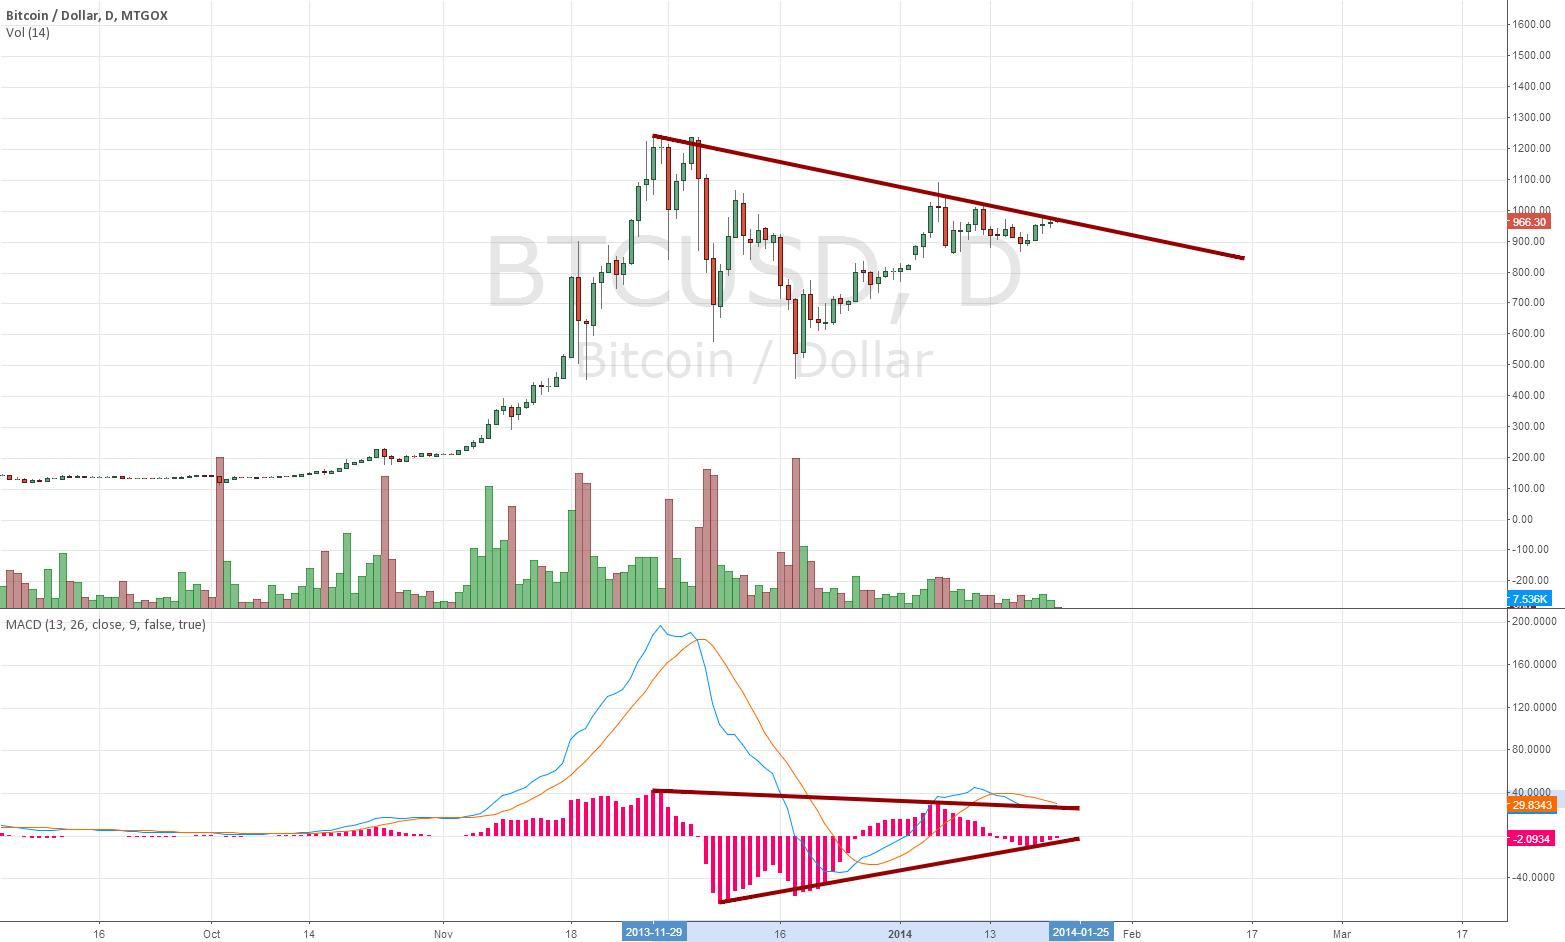 Significant Bullish Divergence